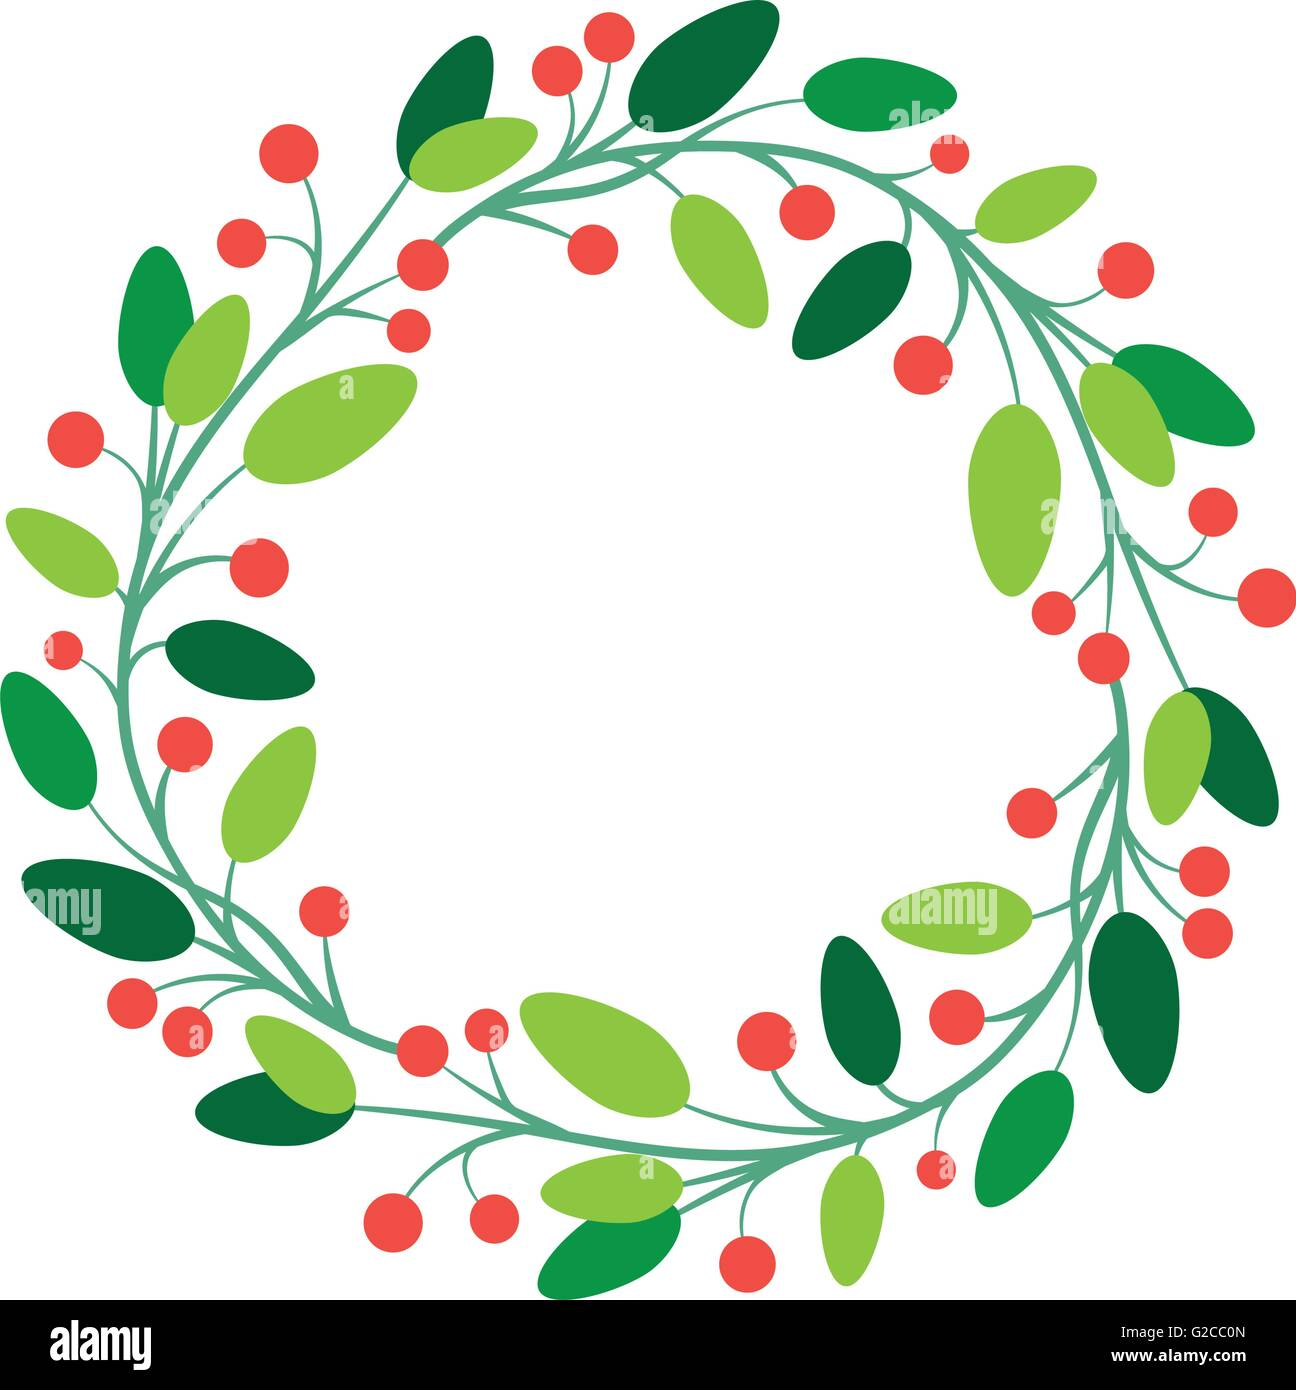 Vector Simple Round Fresh Floral Frame Design